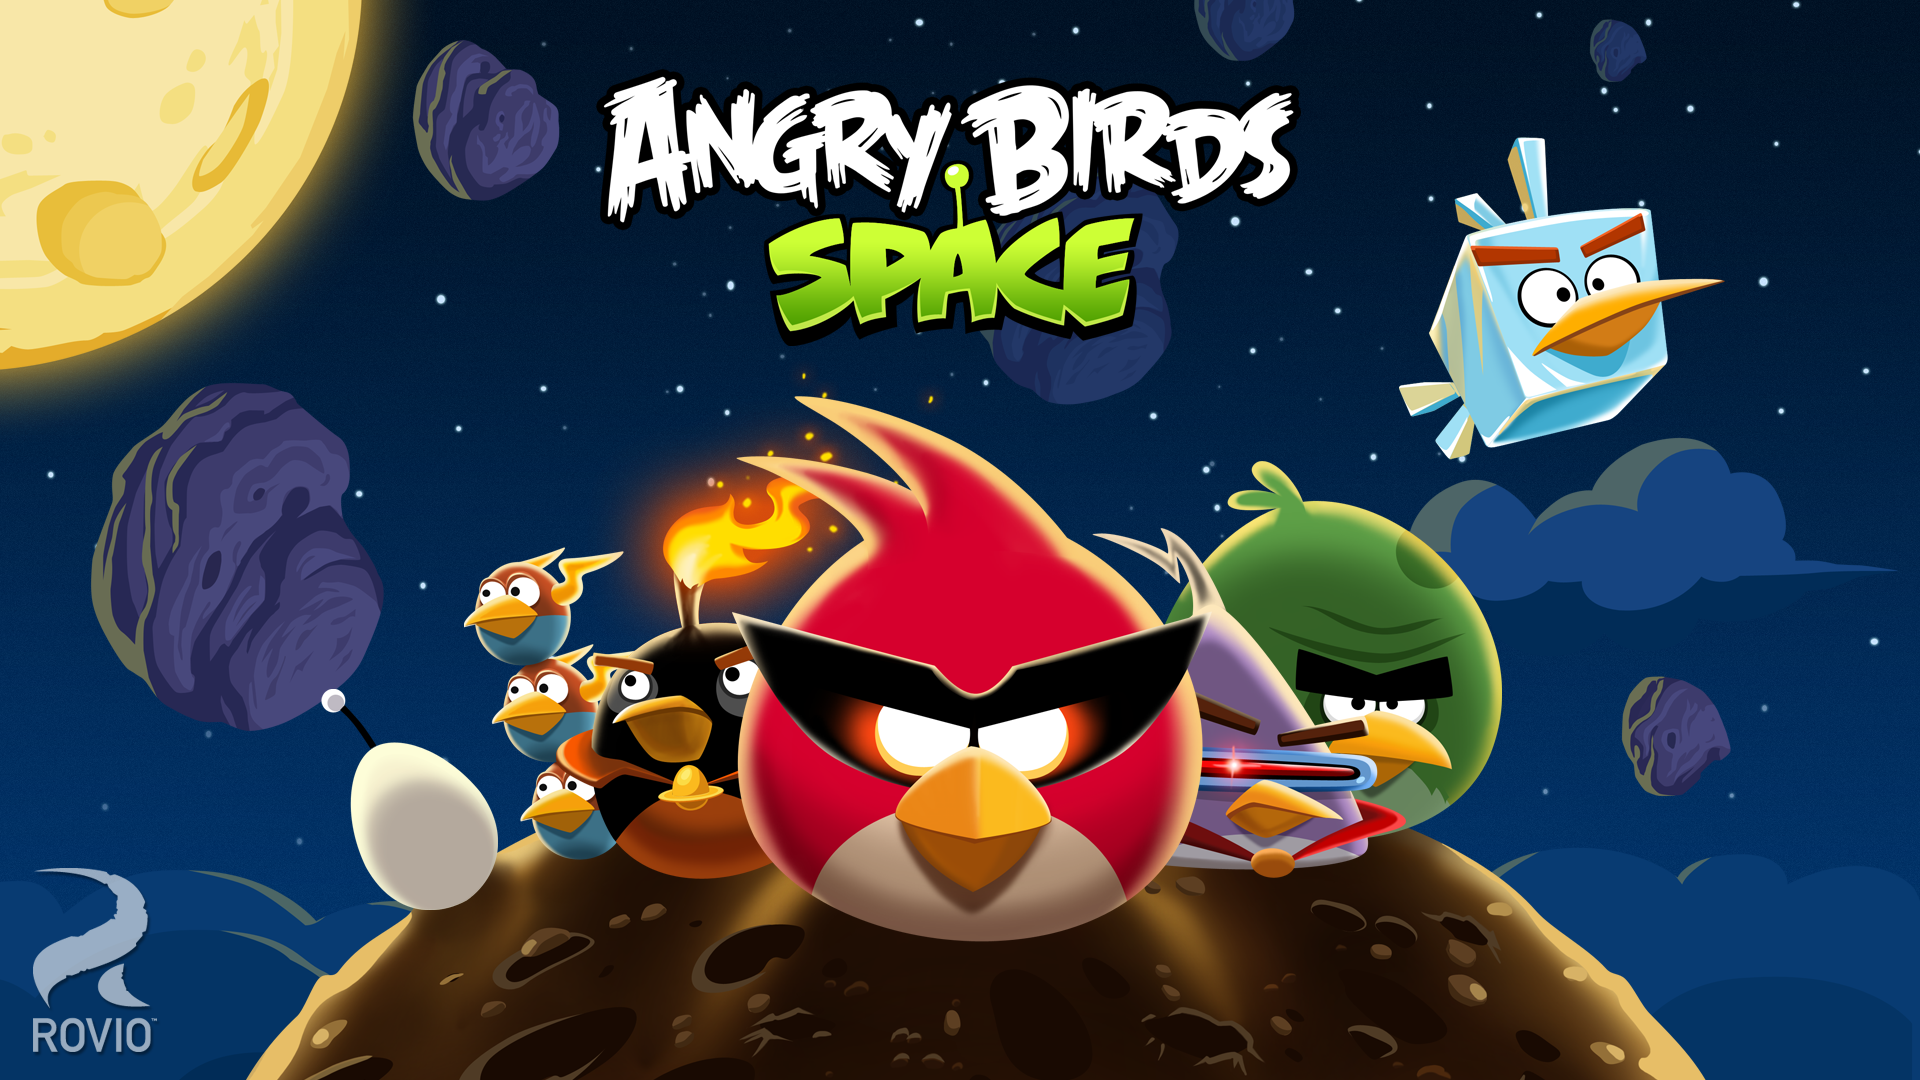 Image of Angry Birds Space